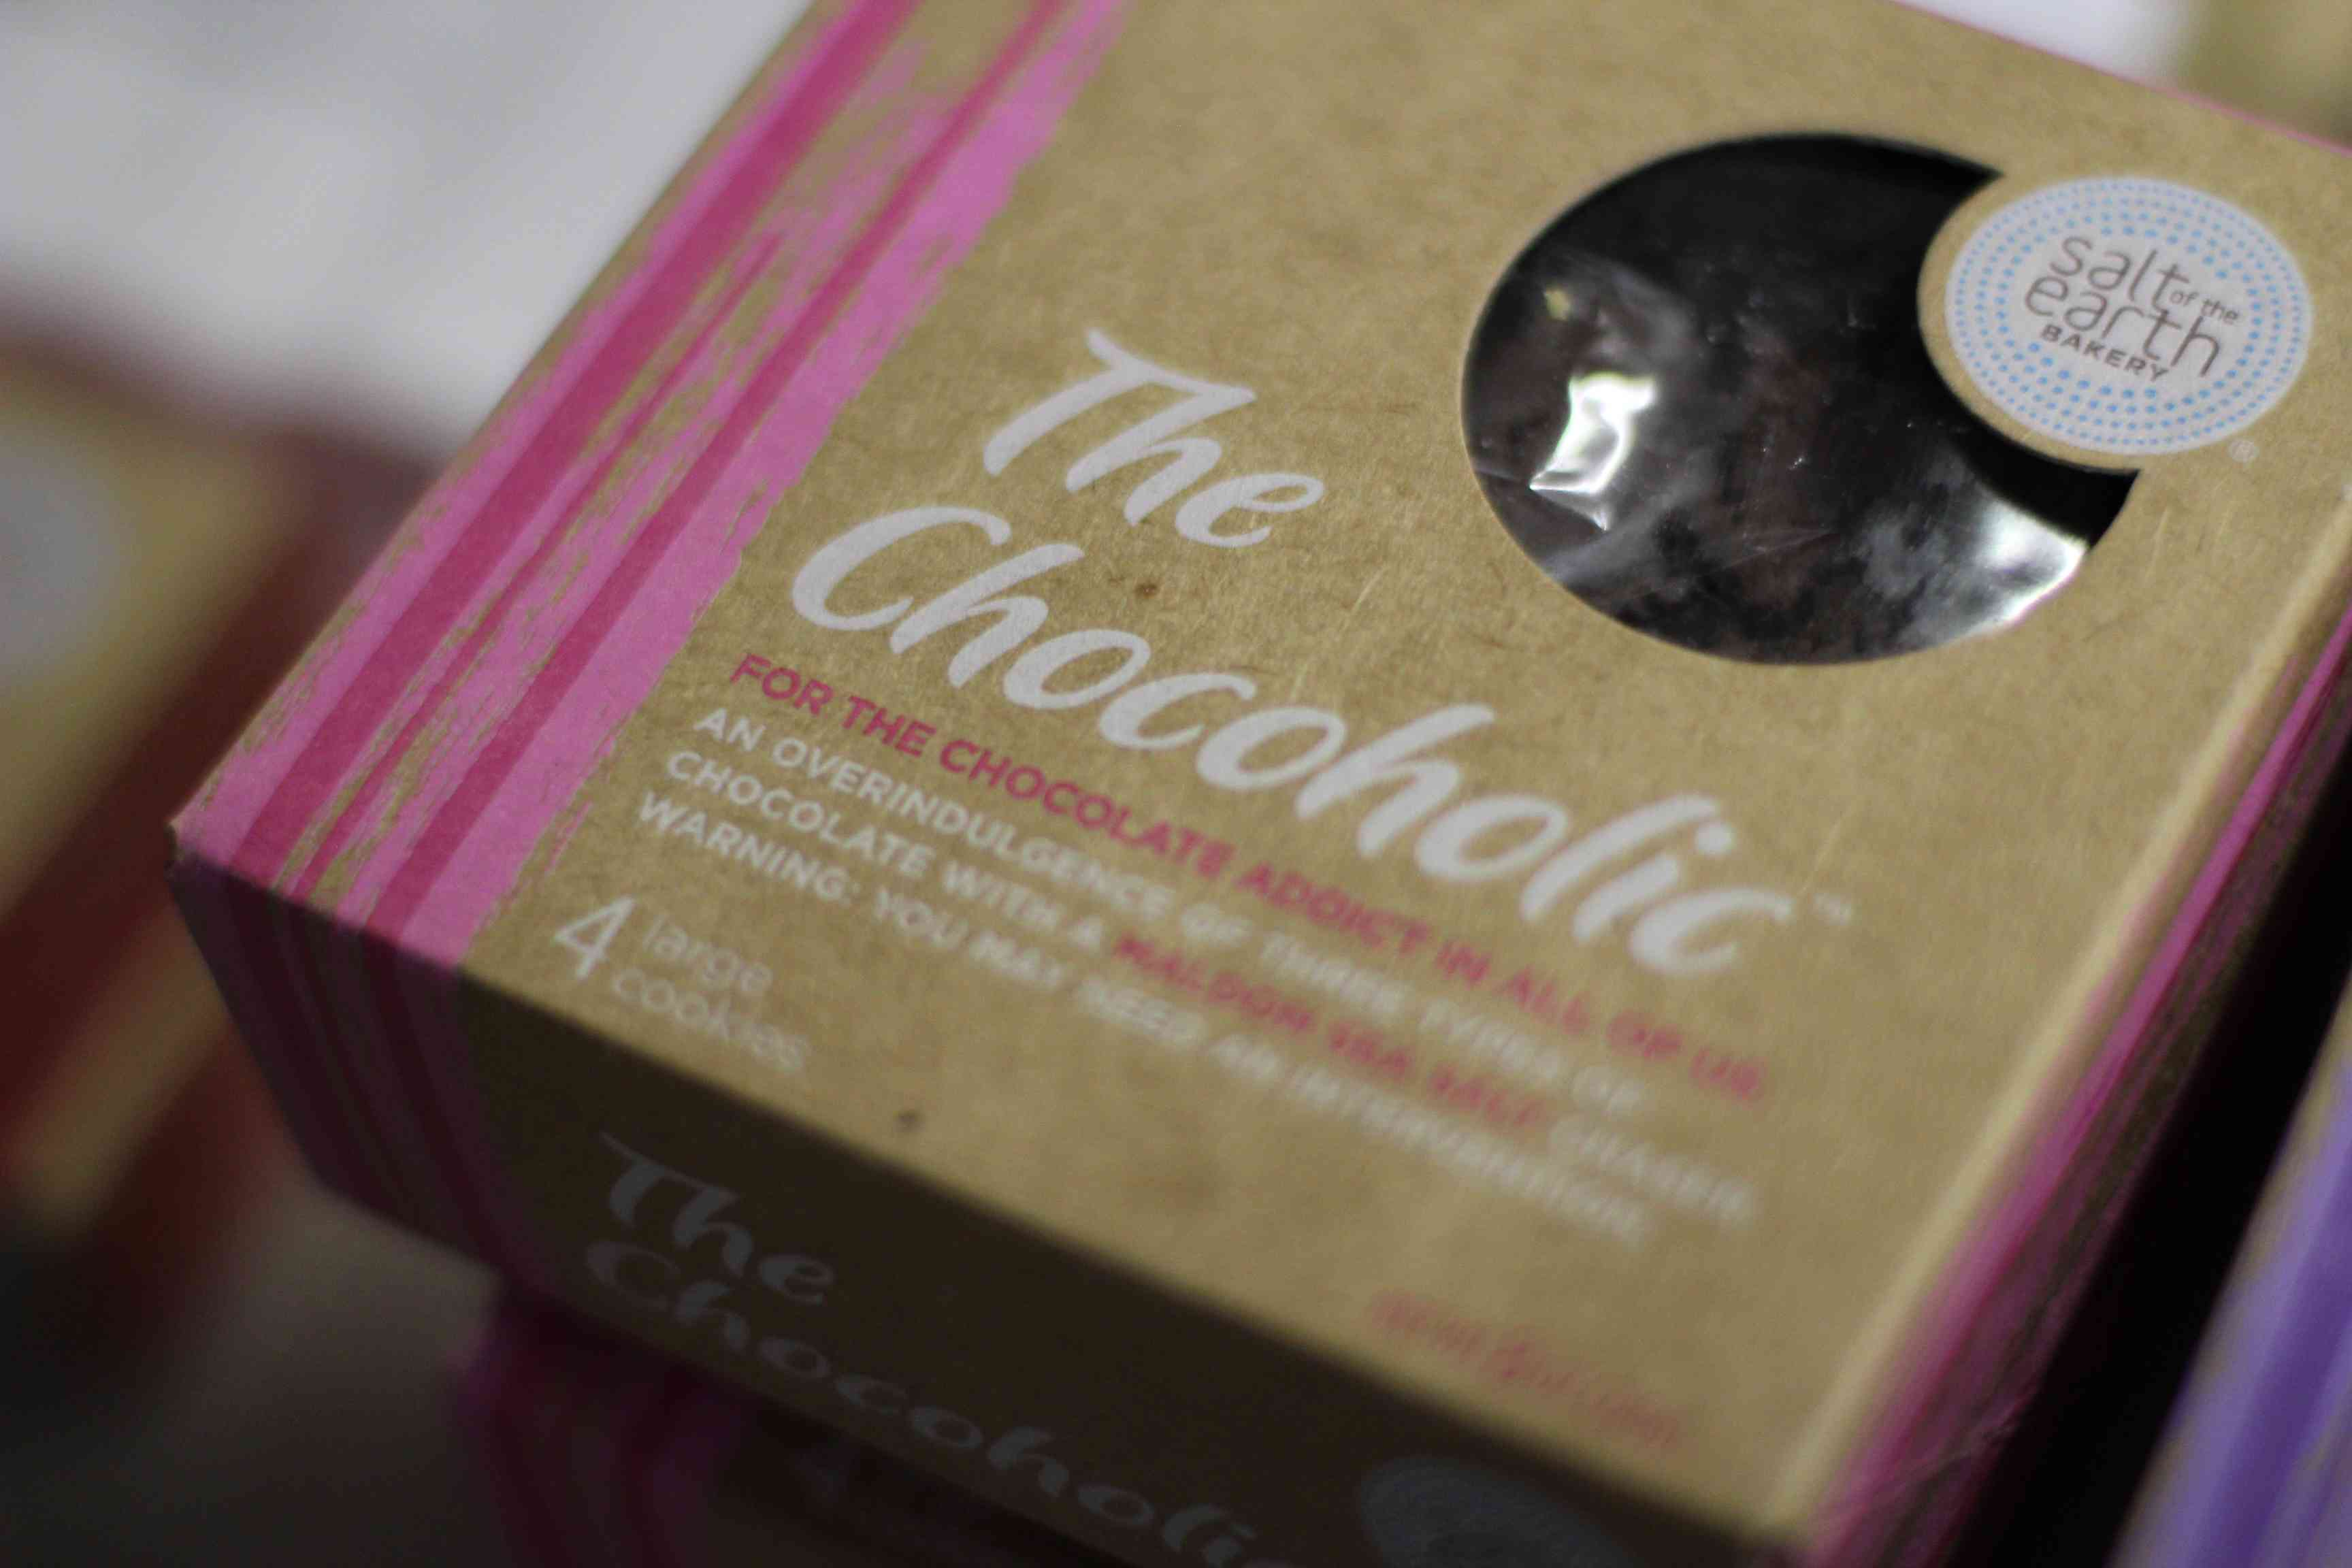 Packaged chocolate